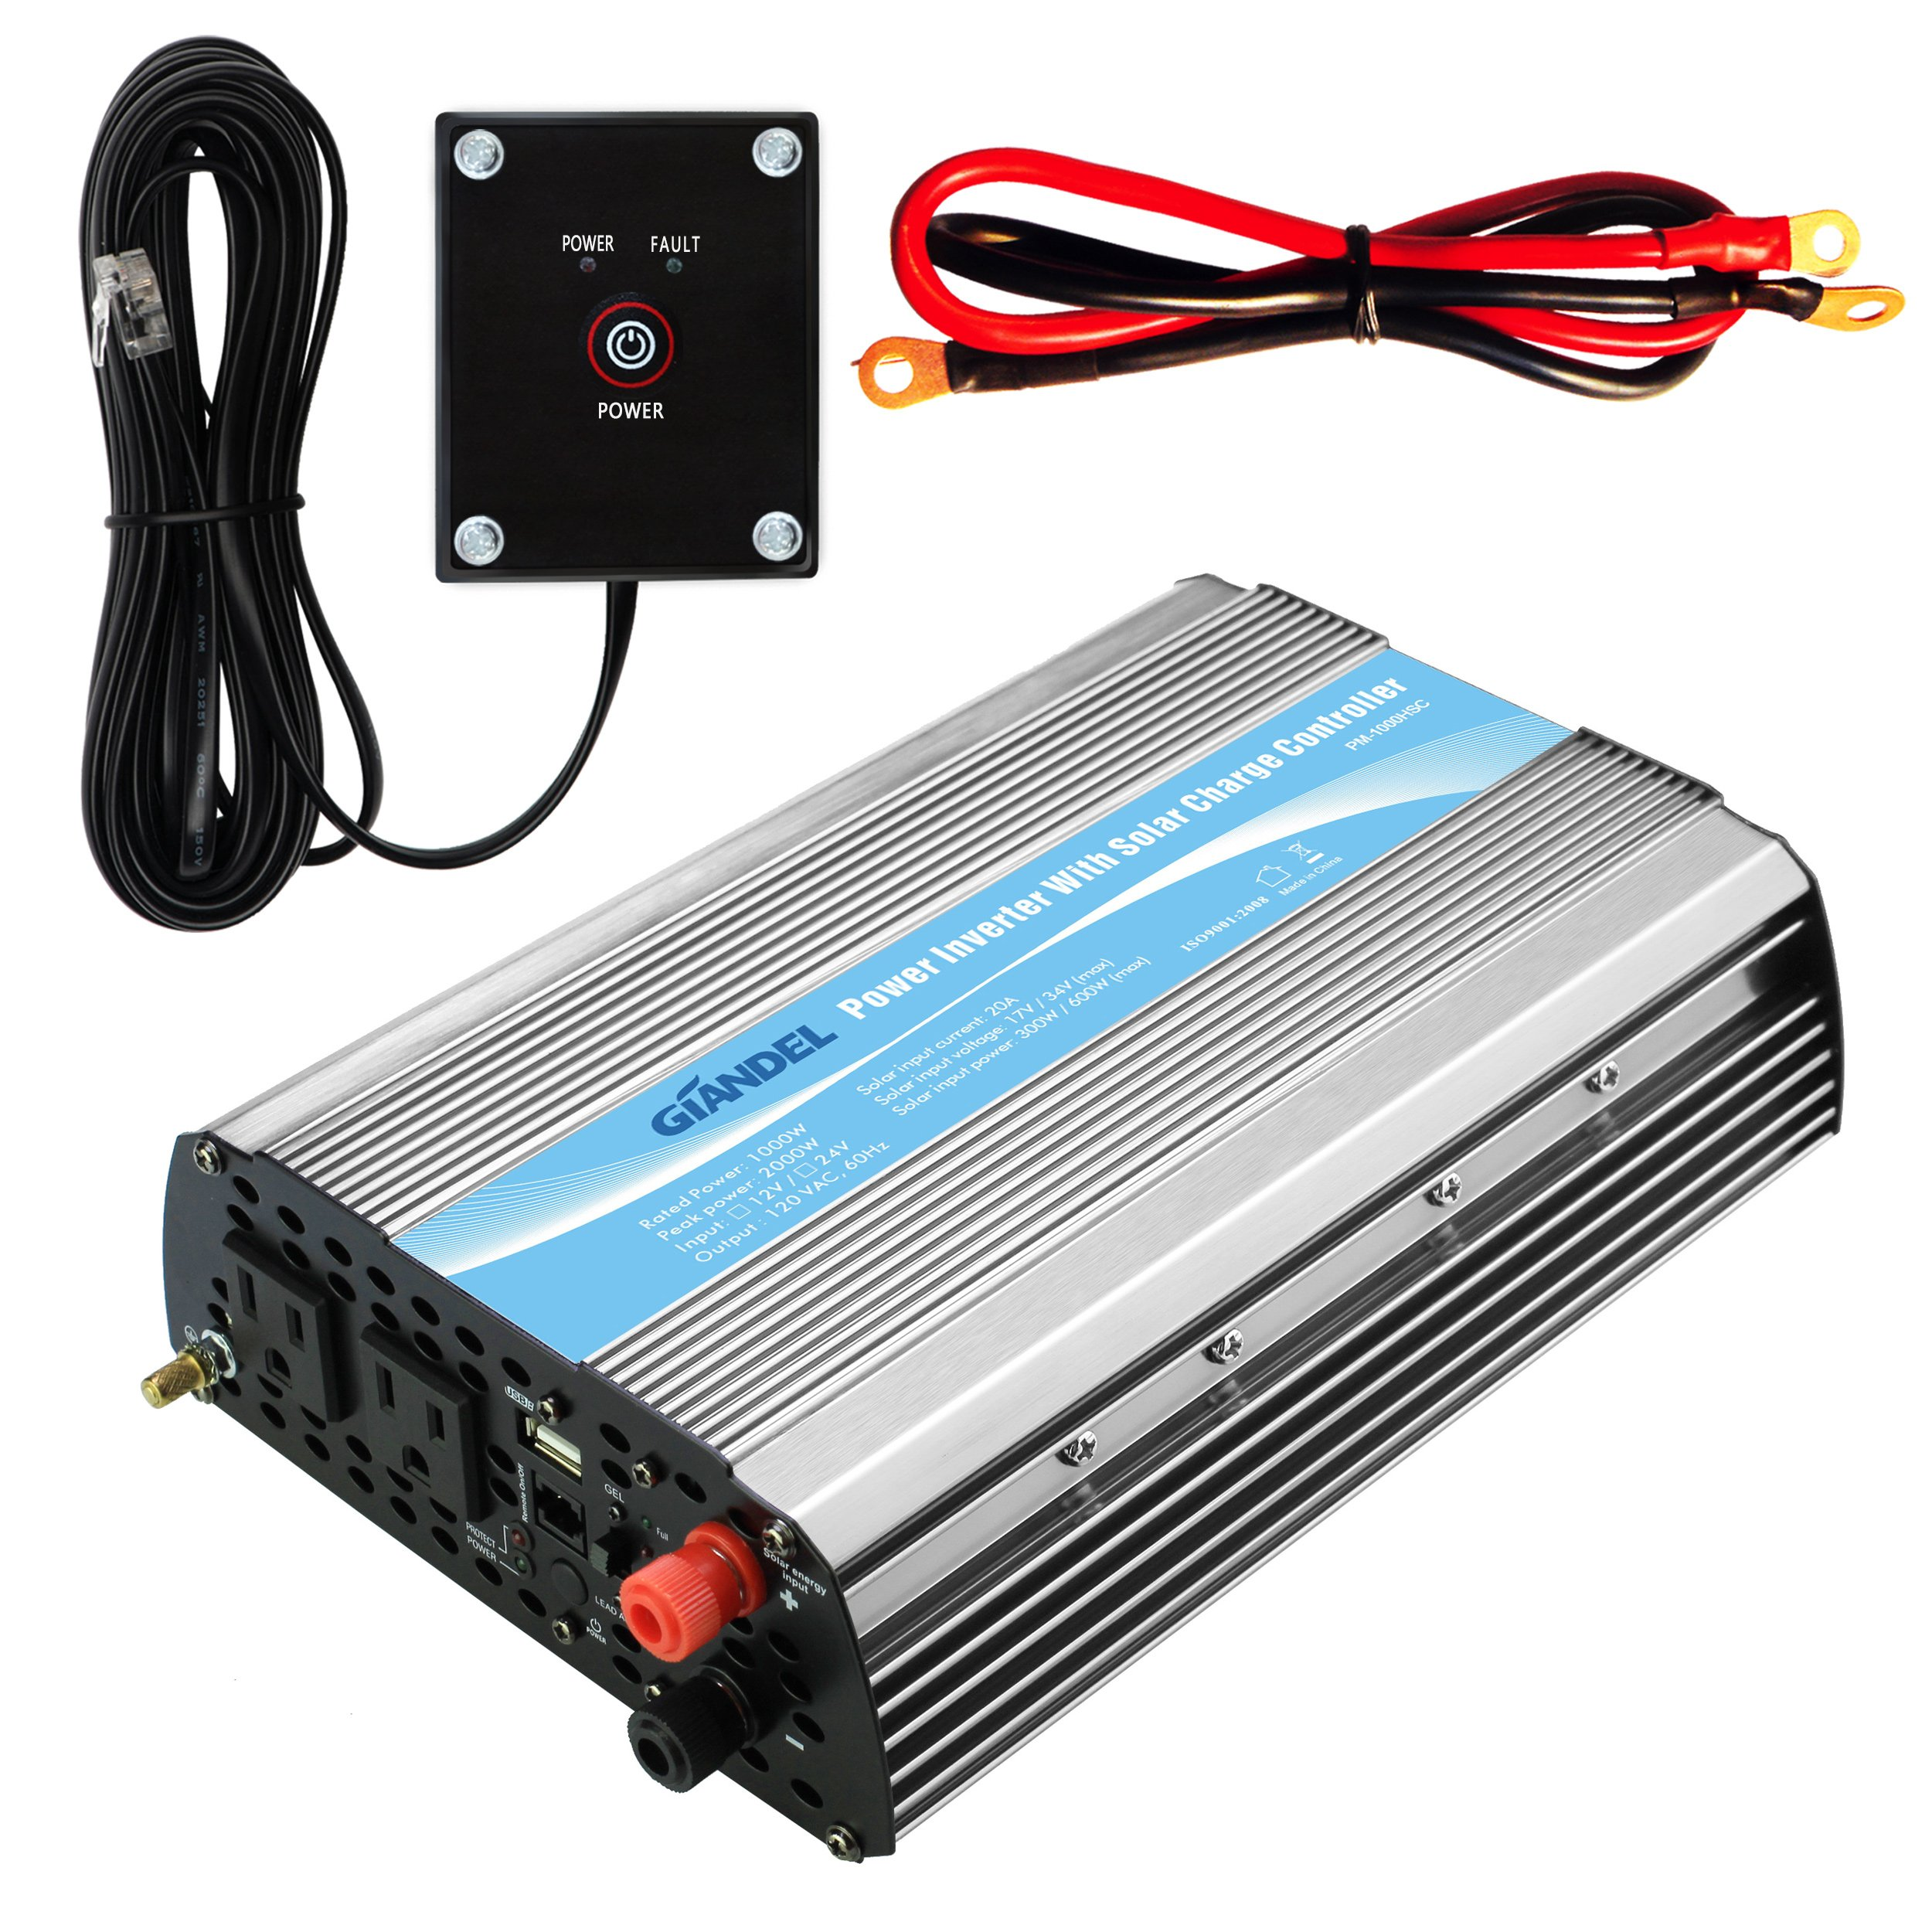 Giandel 1000Watt Power Inverter 24V DC to 110V-120VAC with Remote Controller and Solar Charge Control and Dual AC Outlets & USB Port